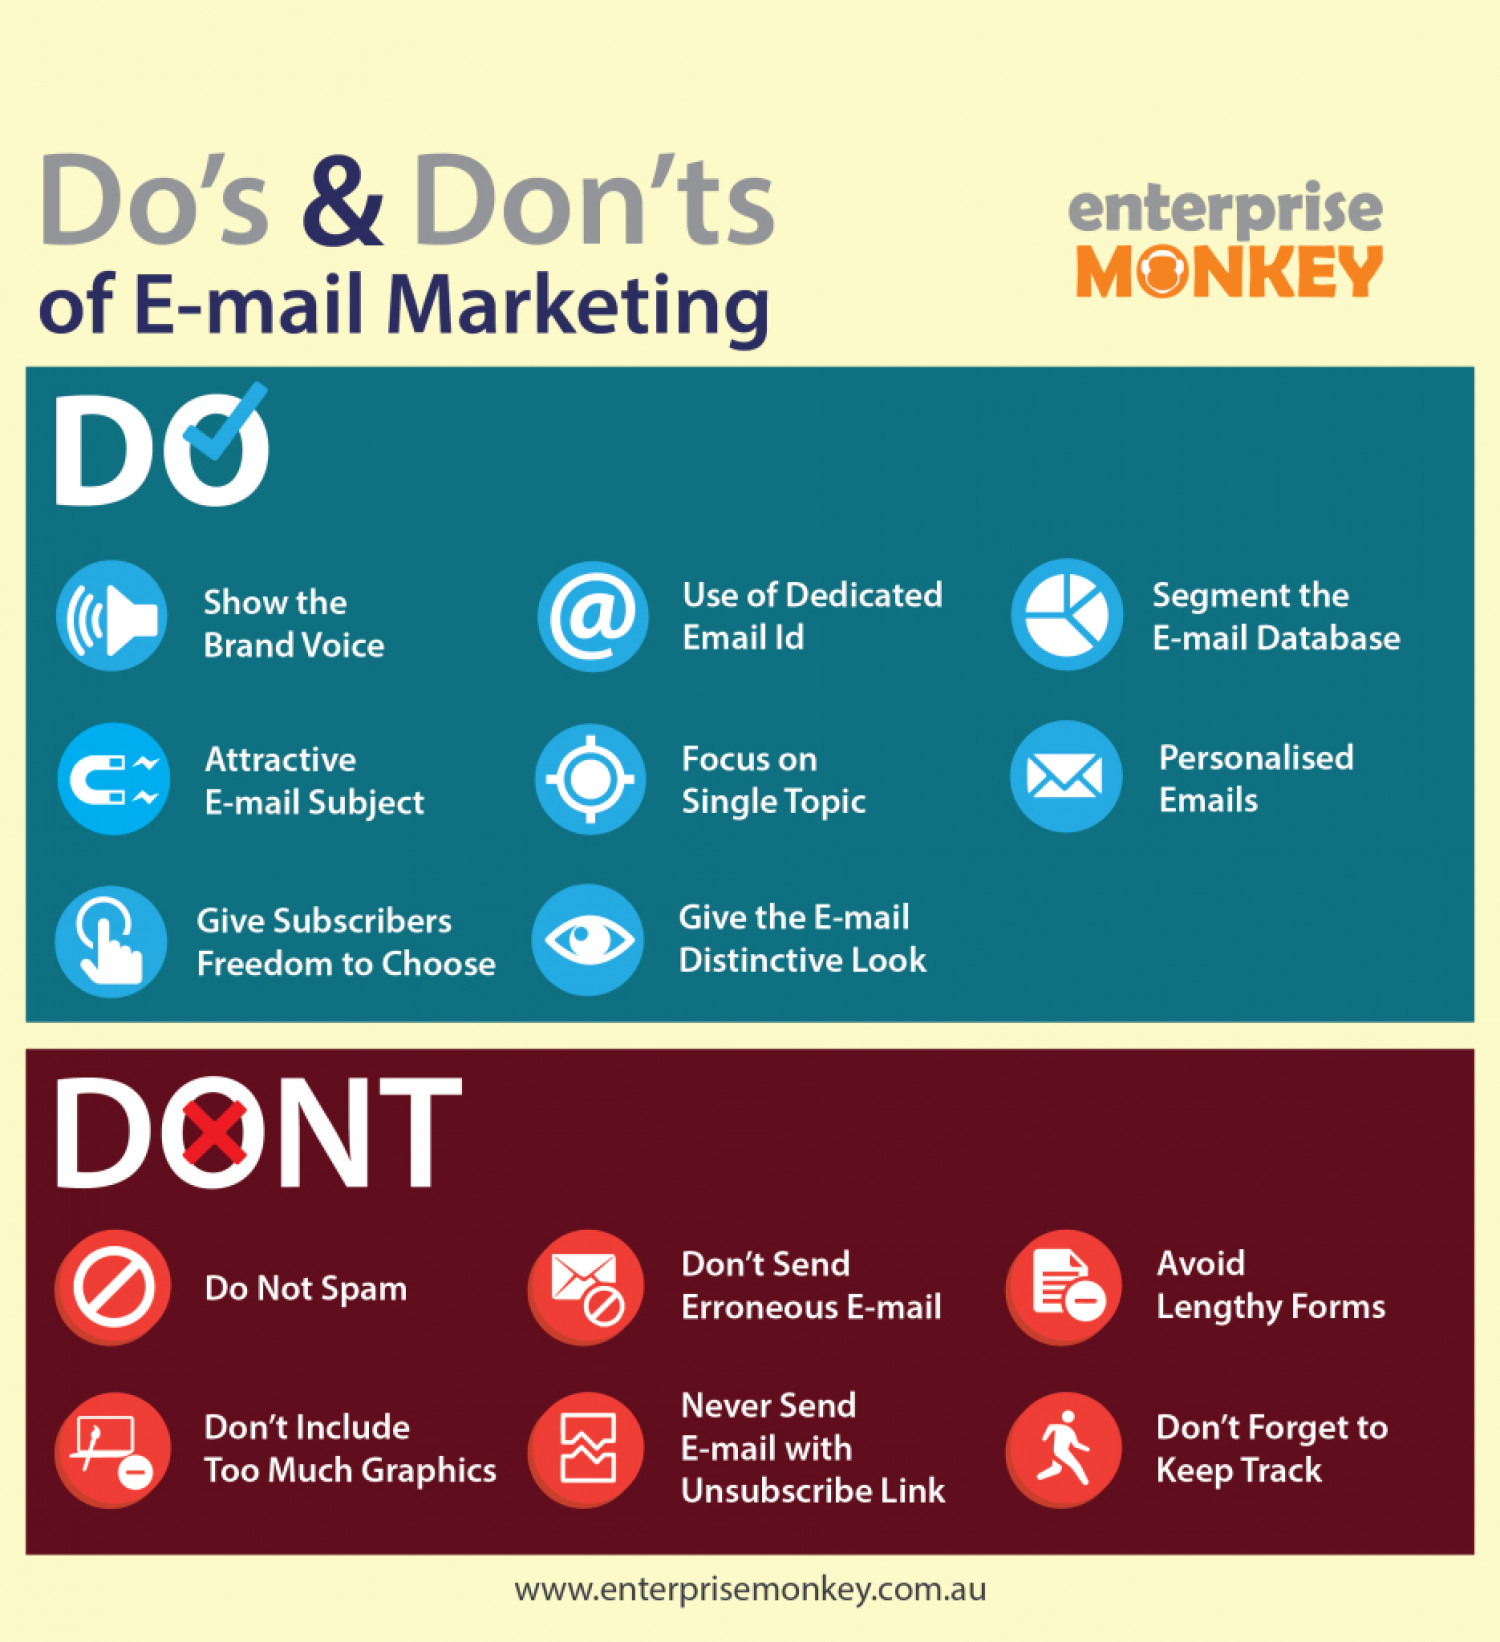 Do's and Don'ts of Email Marketing Infographic